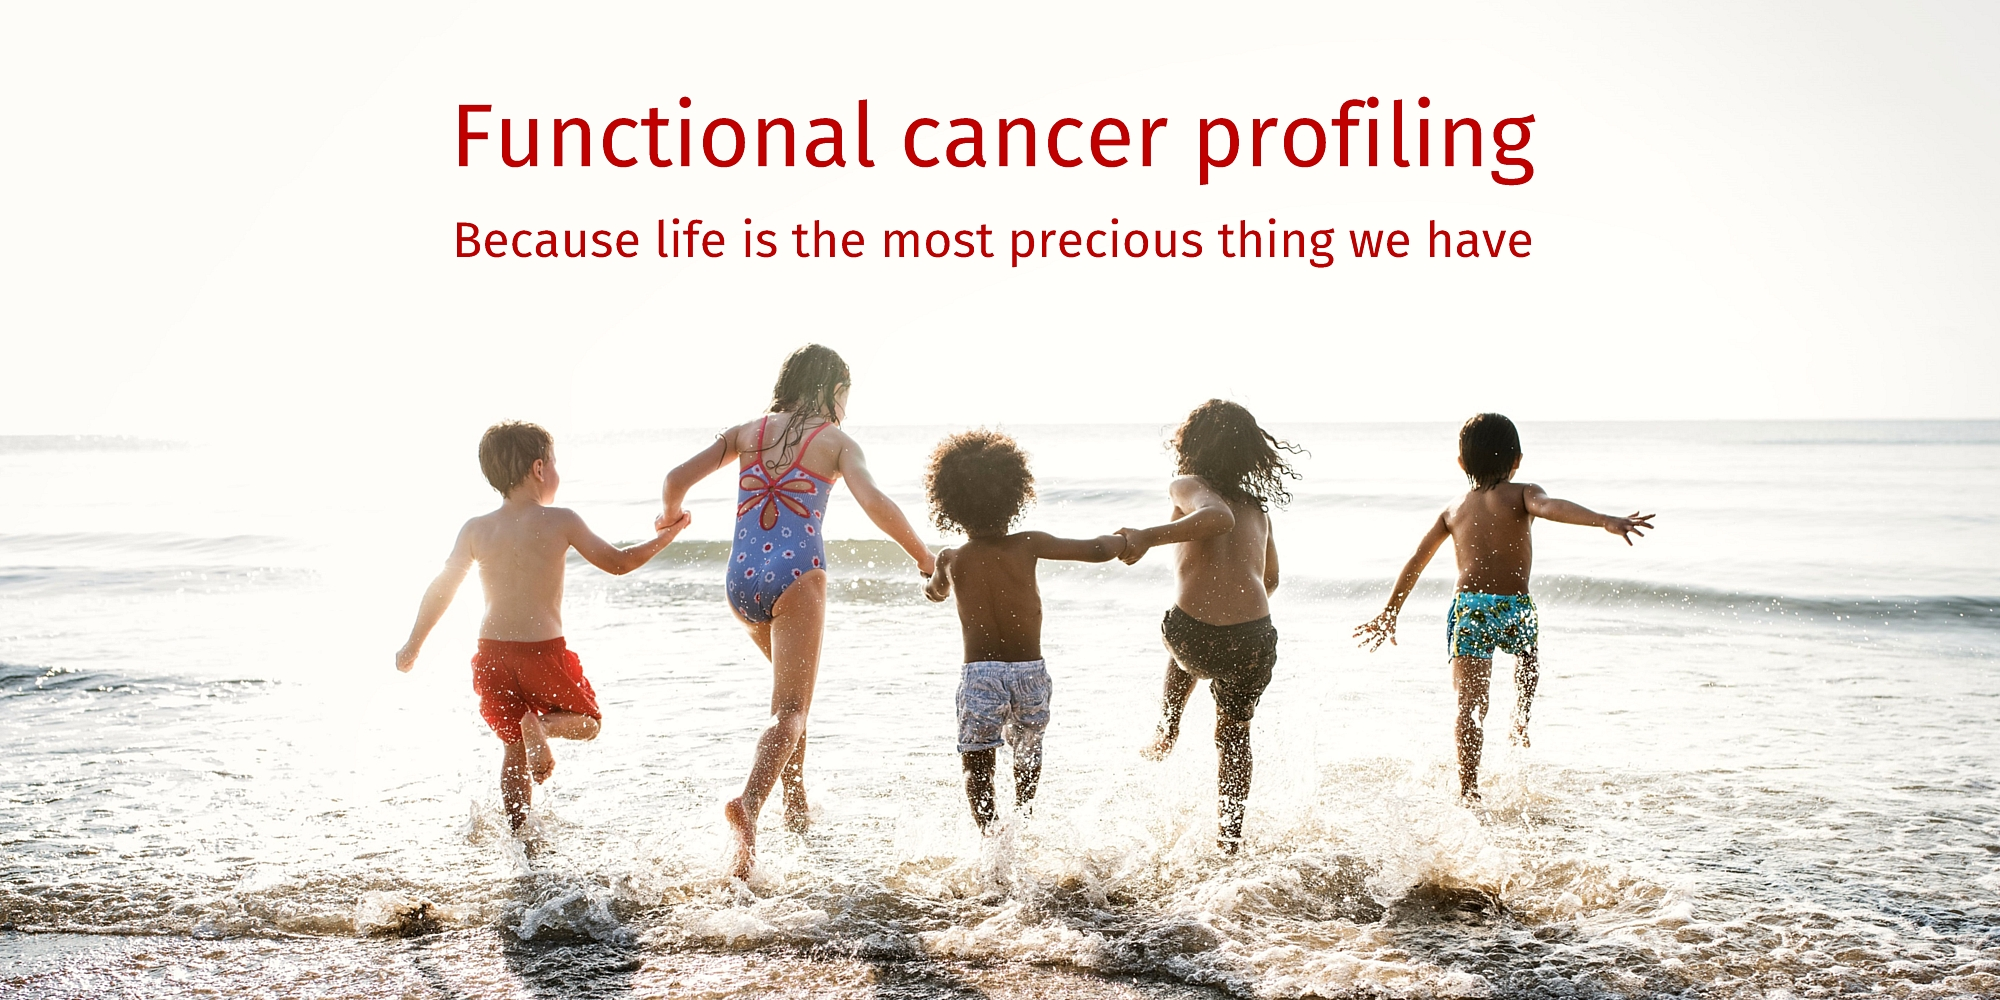 Functional cancer profiling